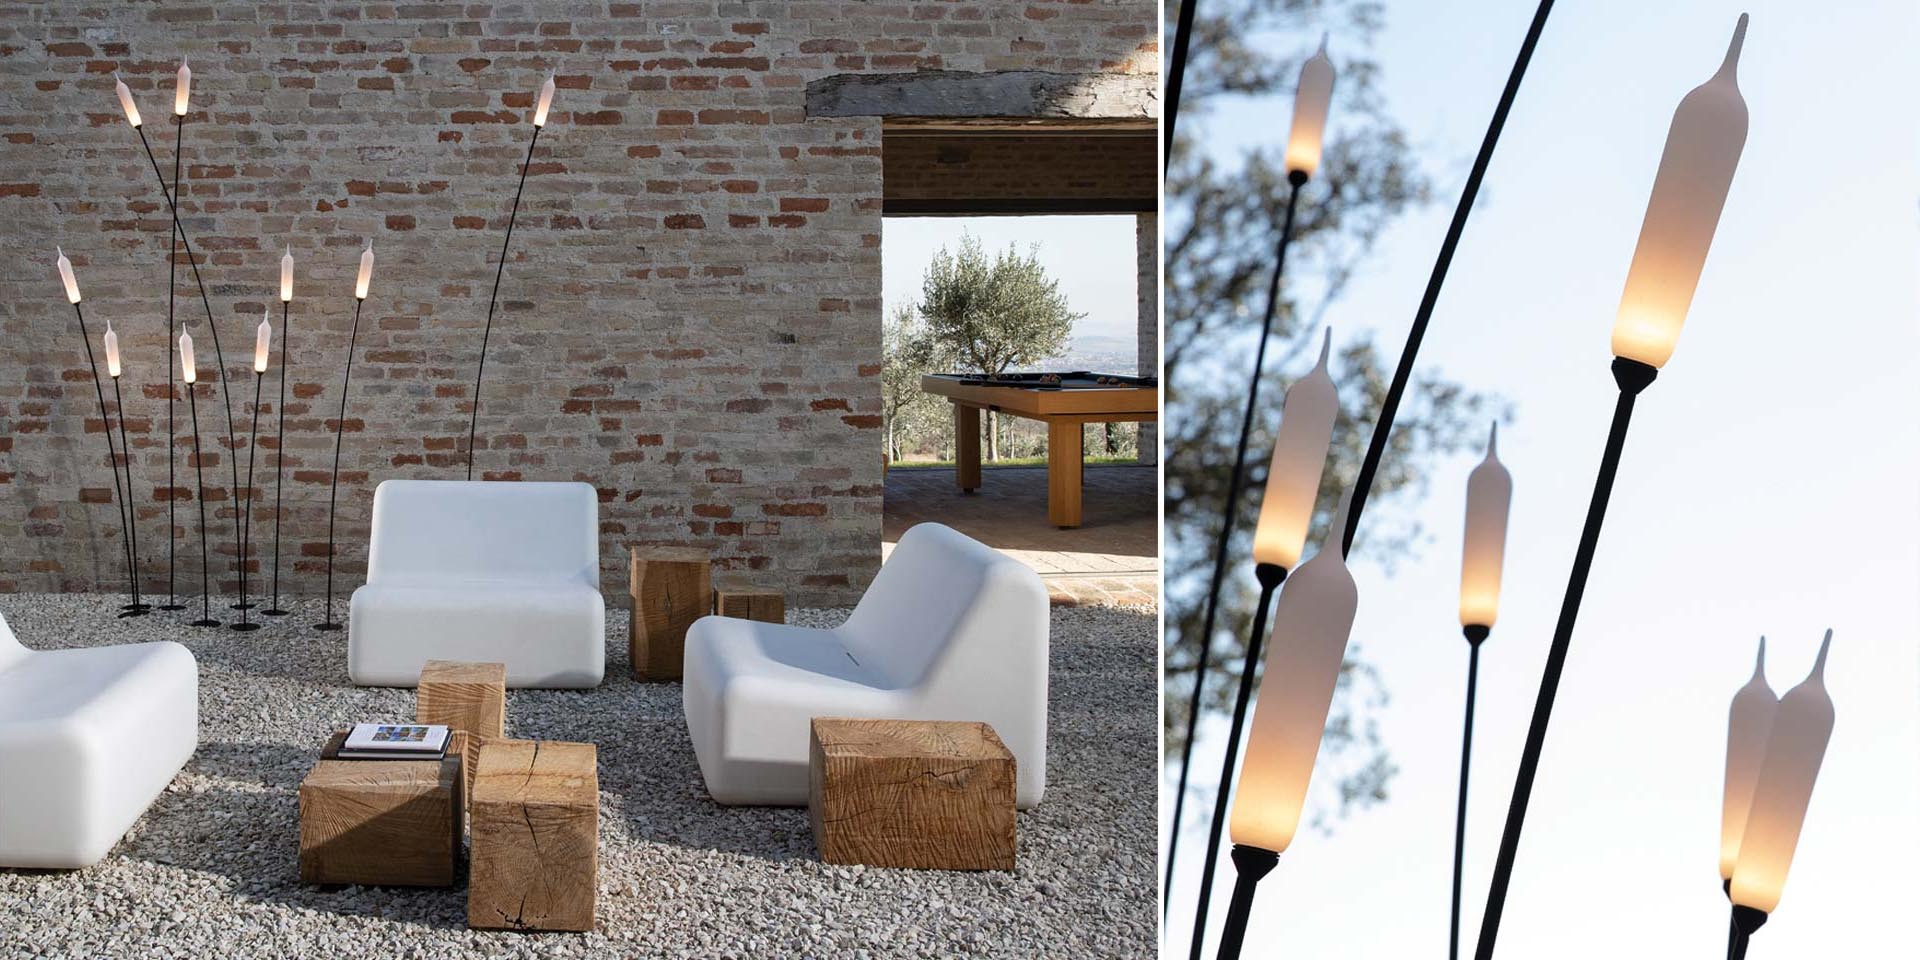 Modern outdoor lighting that looks like bulrush or cattail plants.